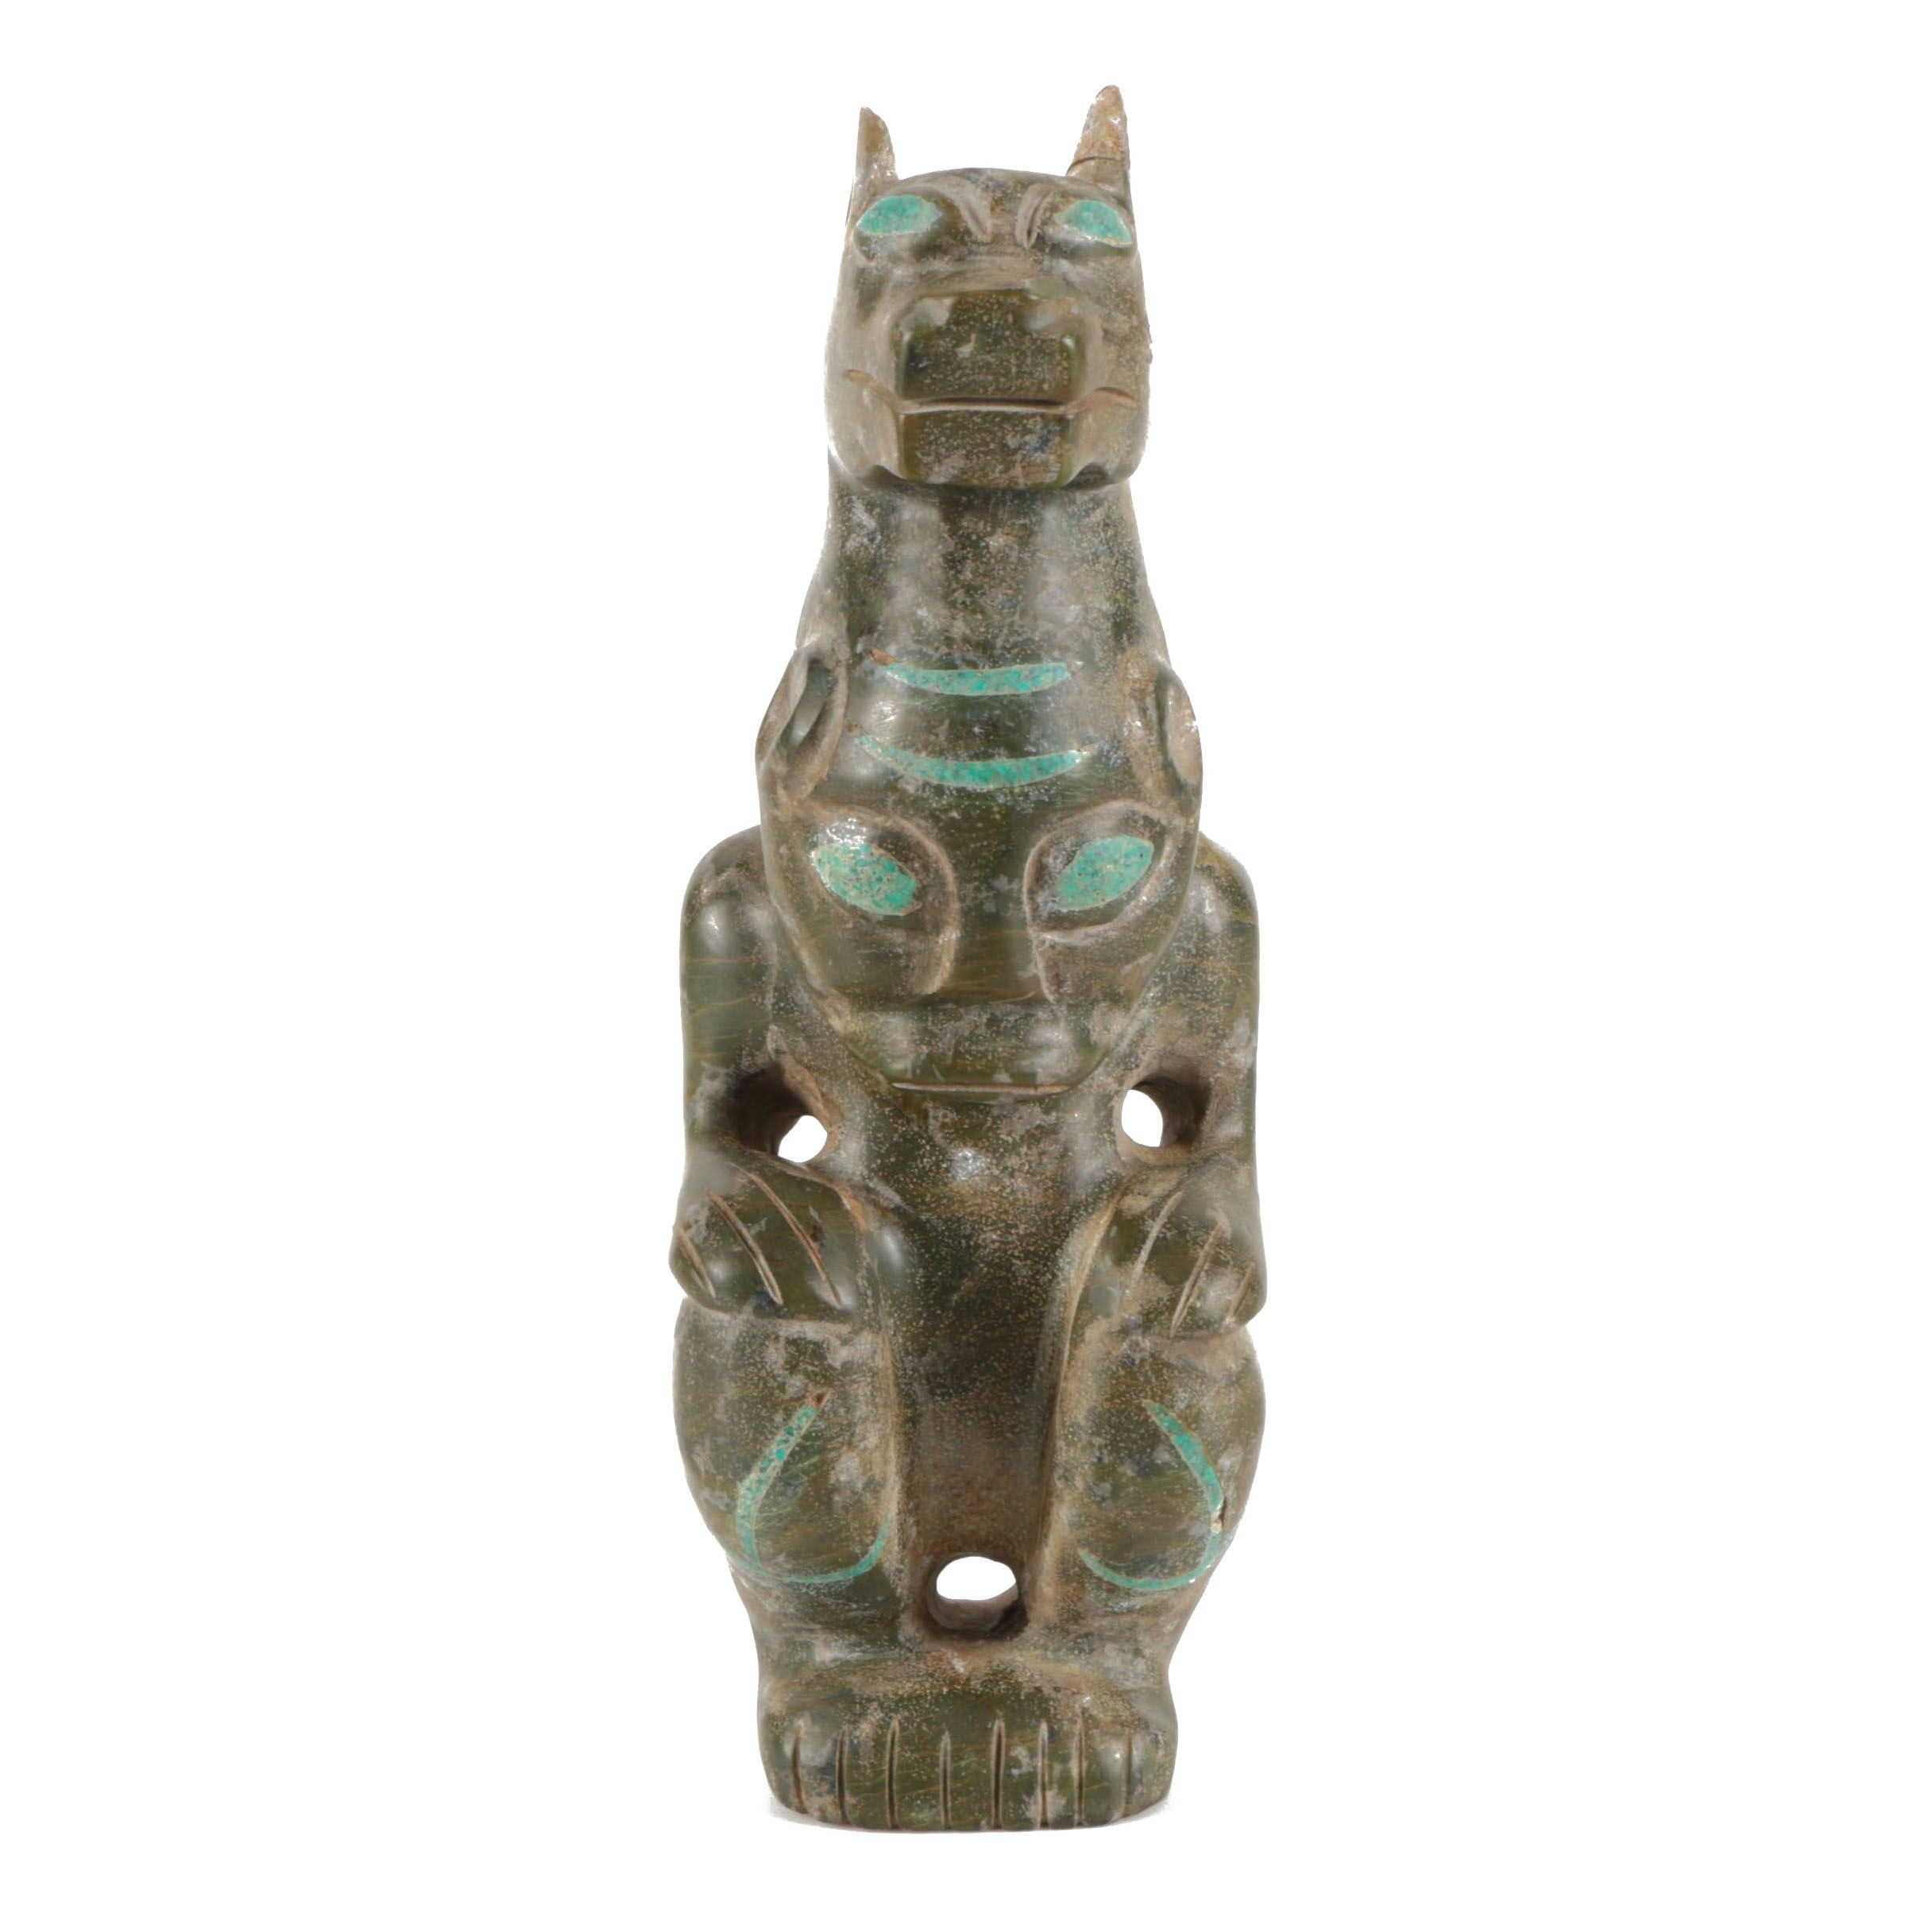 South American-Style Soapstone Sculpture with Turquoise Composite Inlay